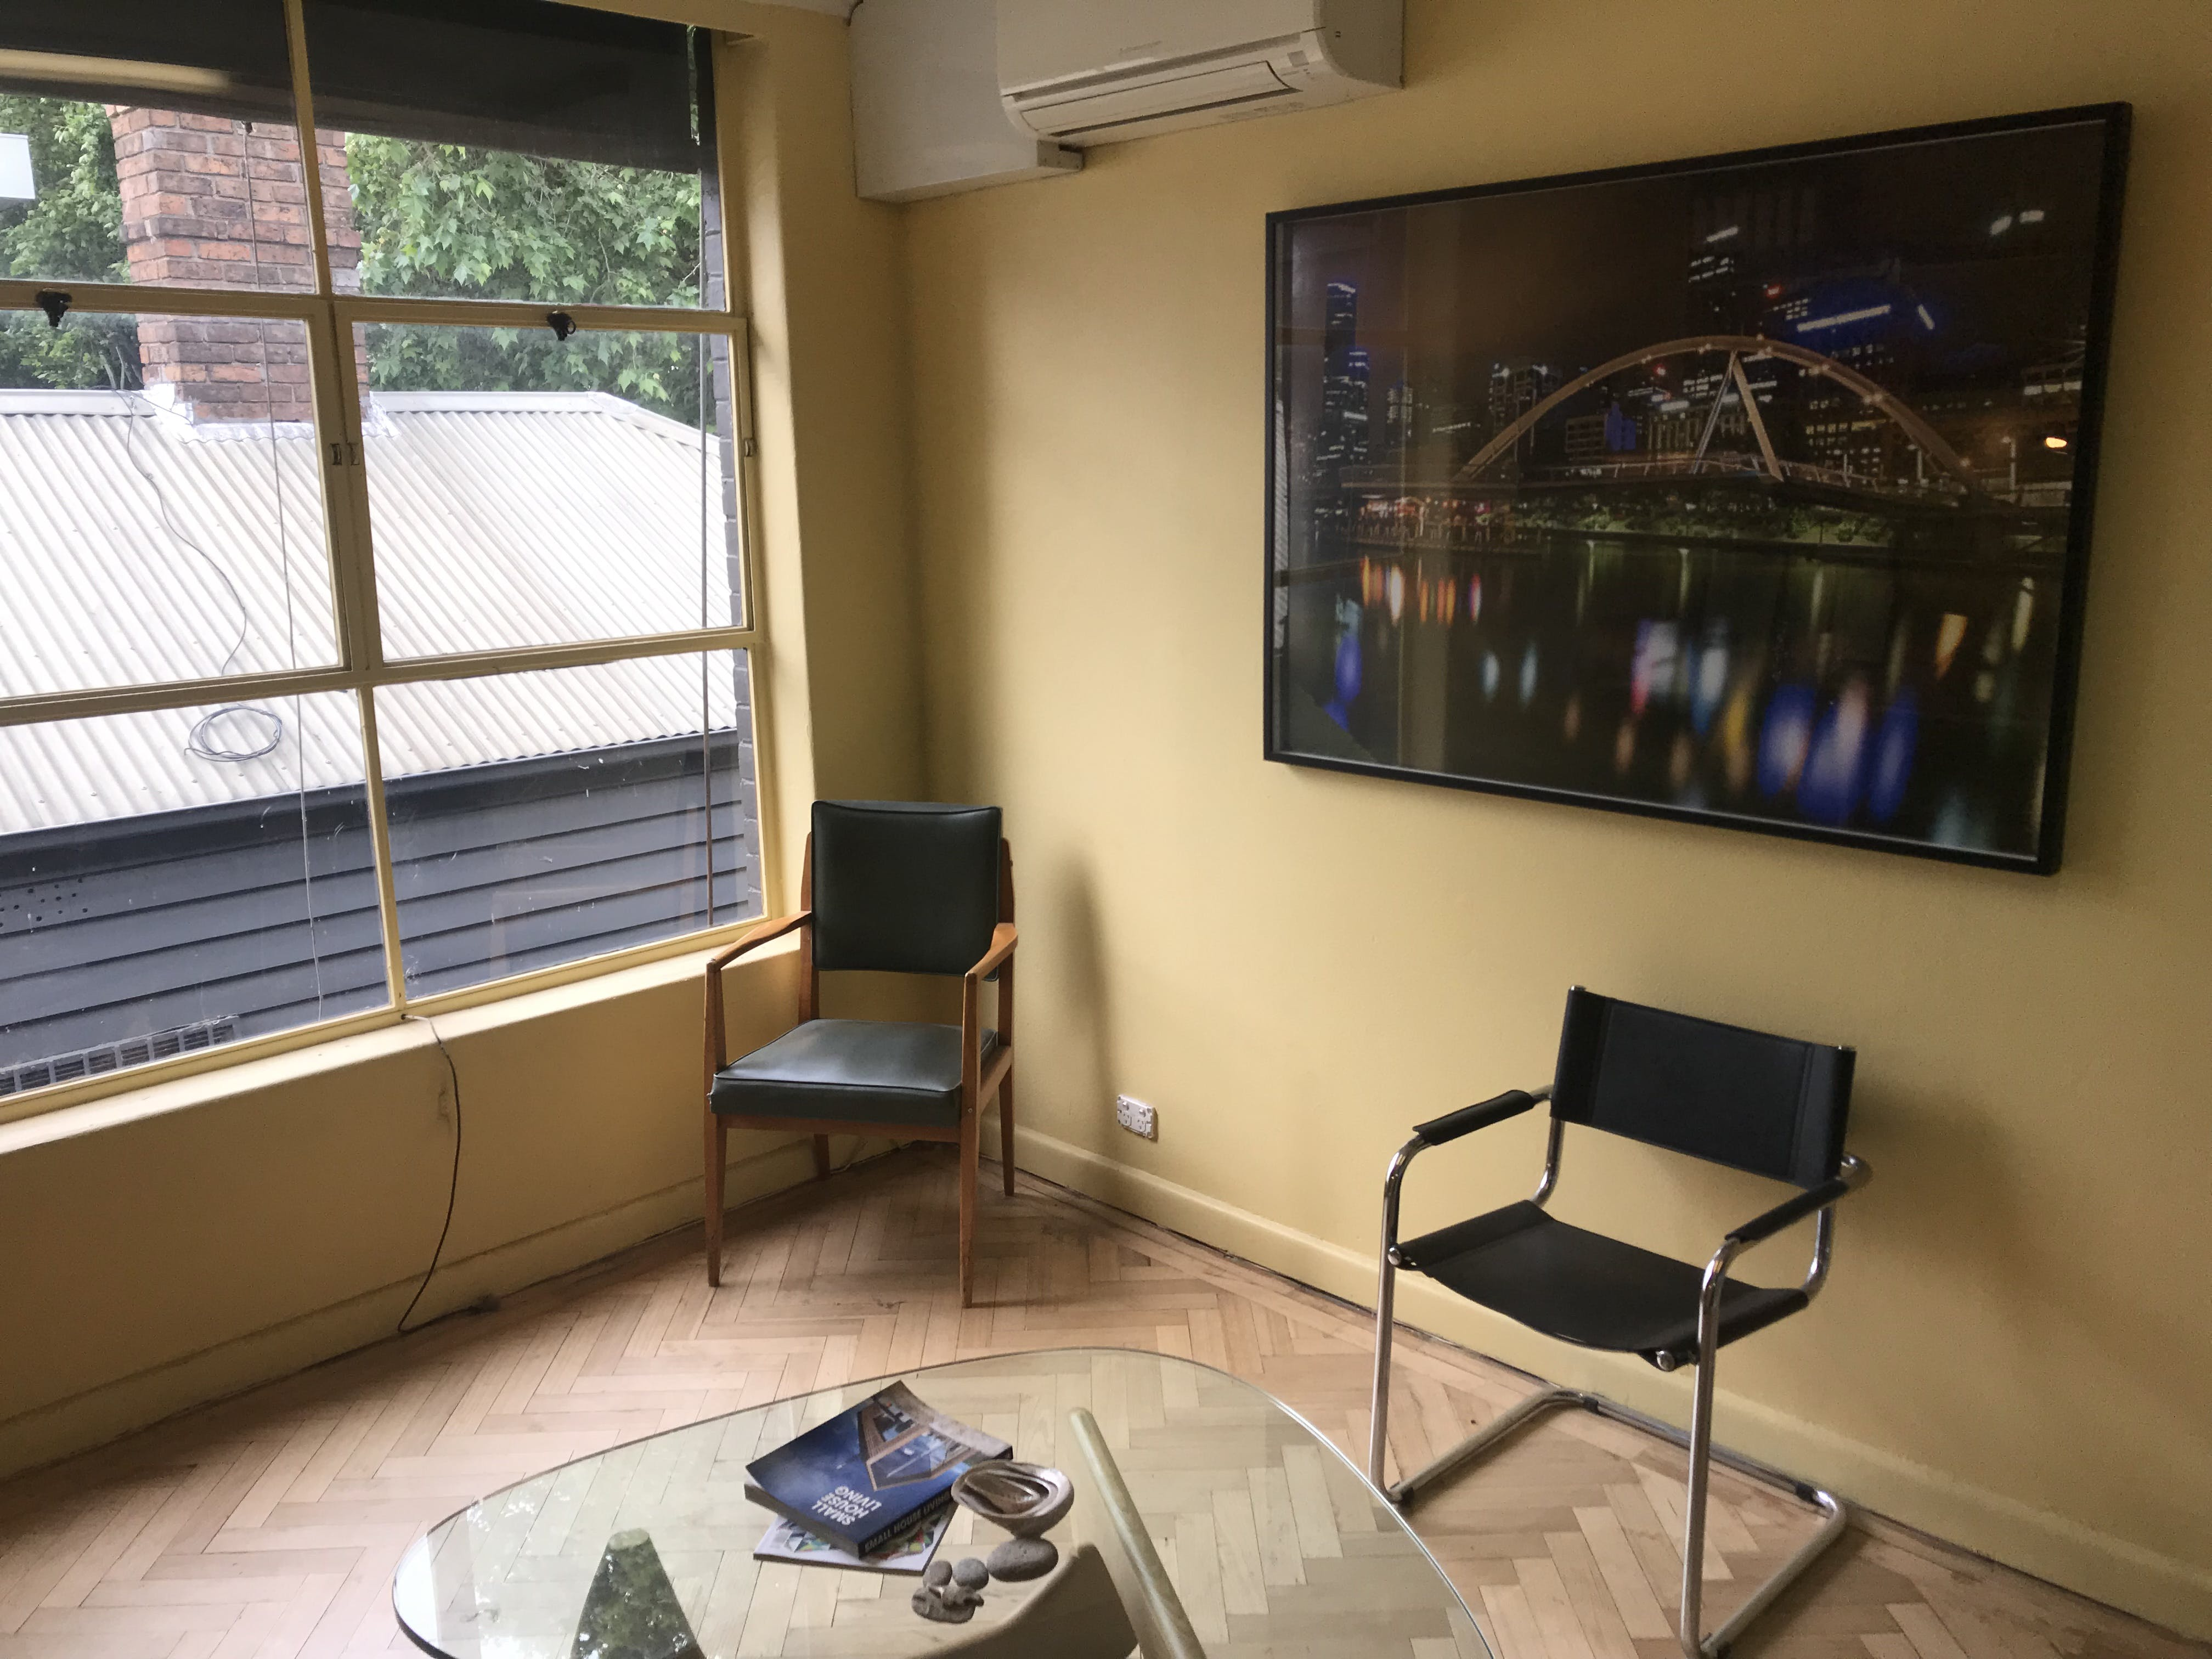 Meeting room at South Yarra sunroom, image 1